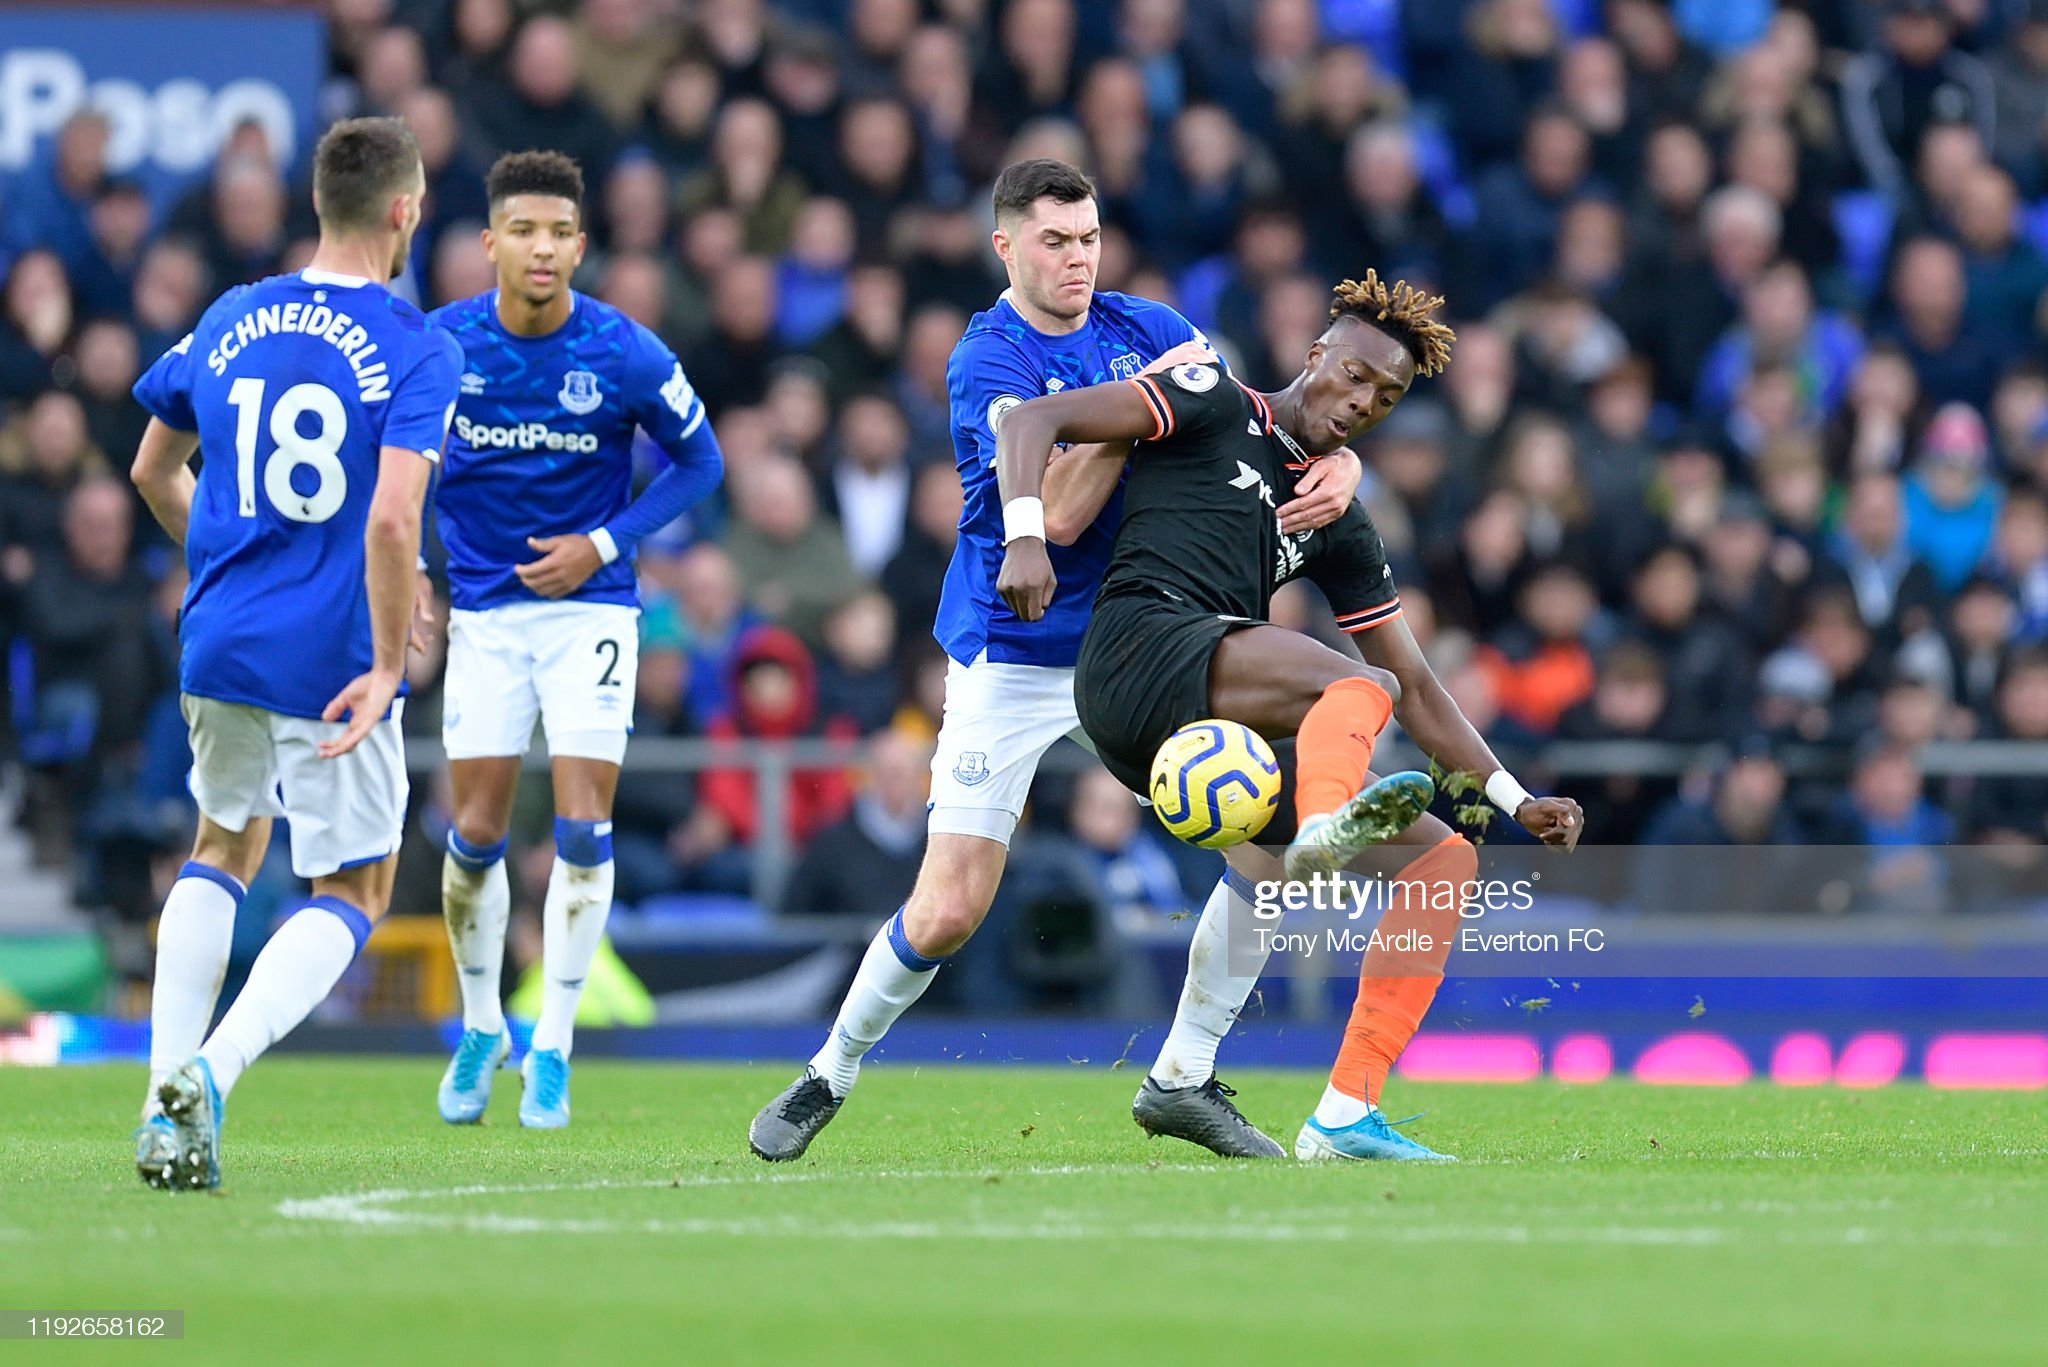 Chelsea v Everton Preview, prediction and odds